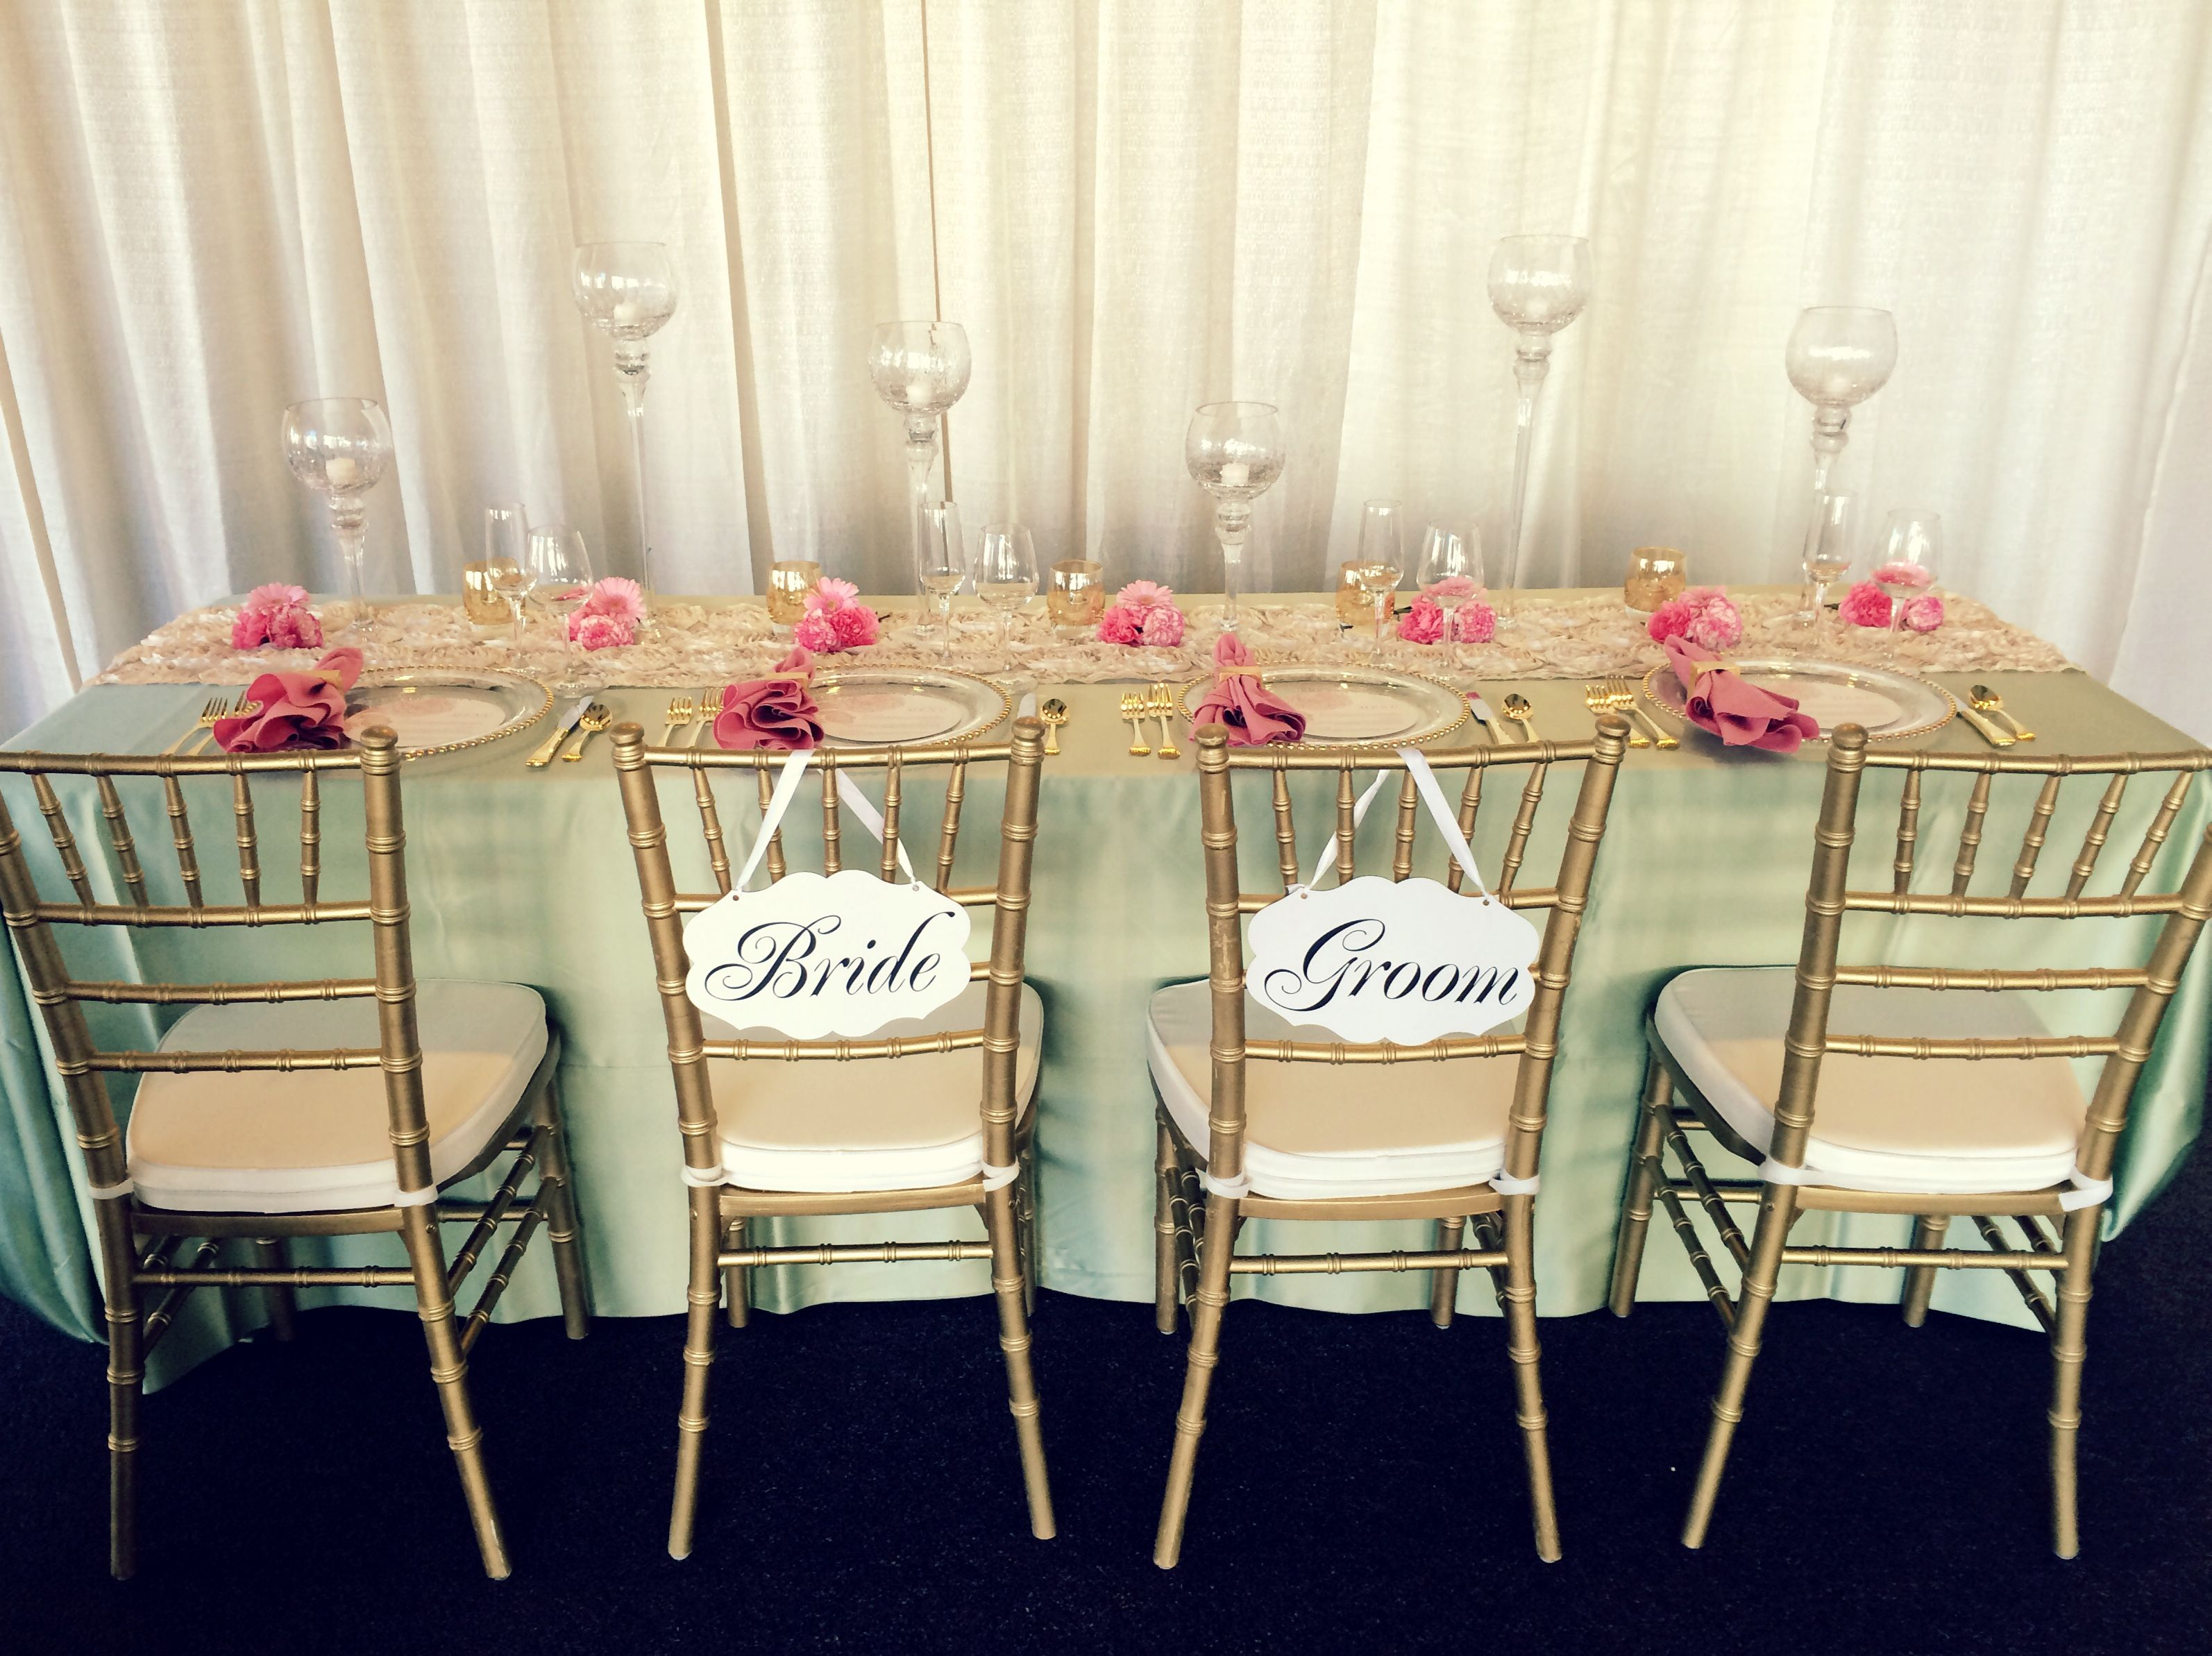 Head Table Design For A Showcase Event In March 2015 Sage Green Pale Pink Ivory Wedding Rental Company Event Rental Wedding Rentals